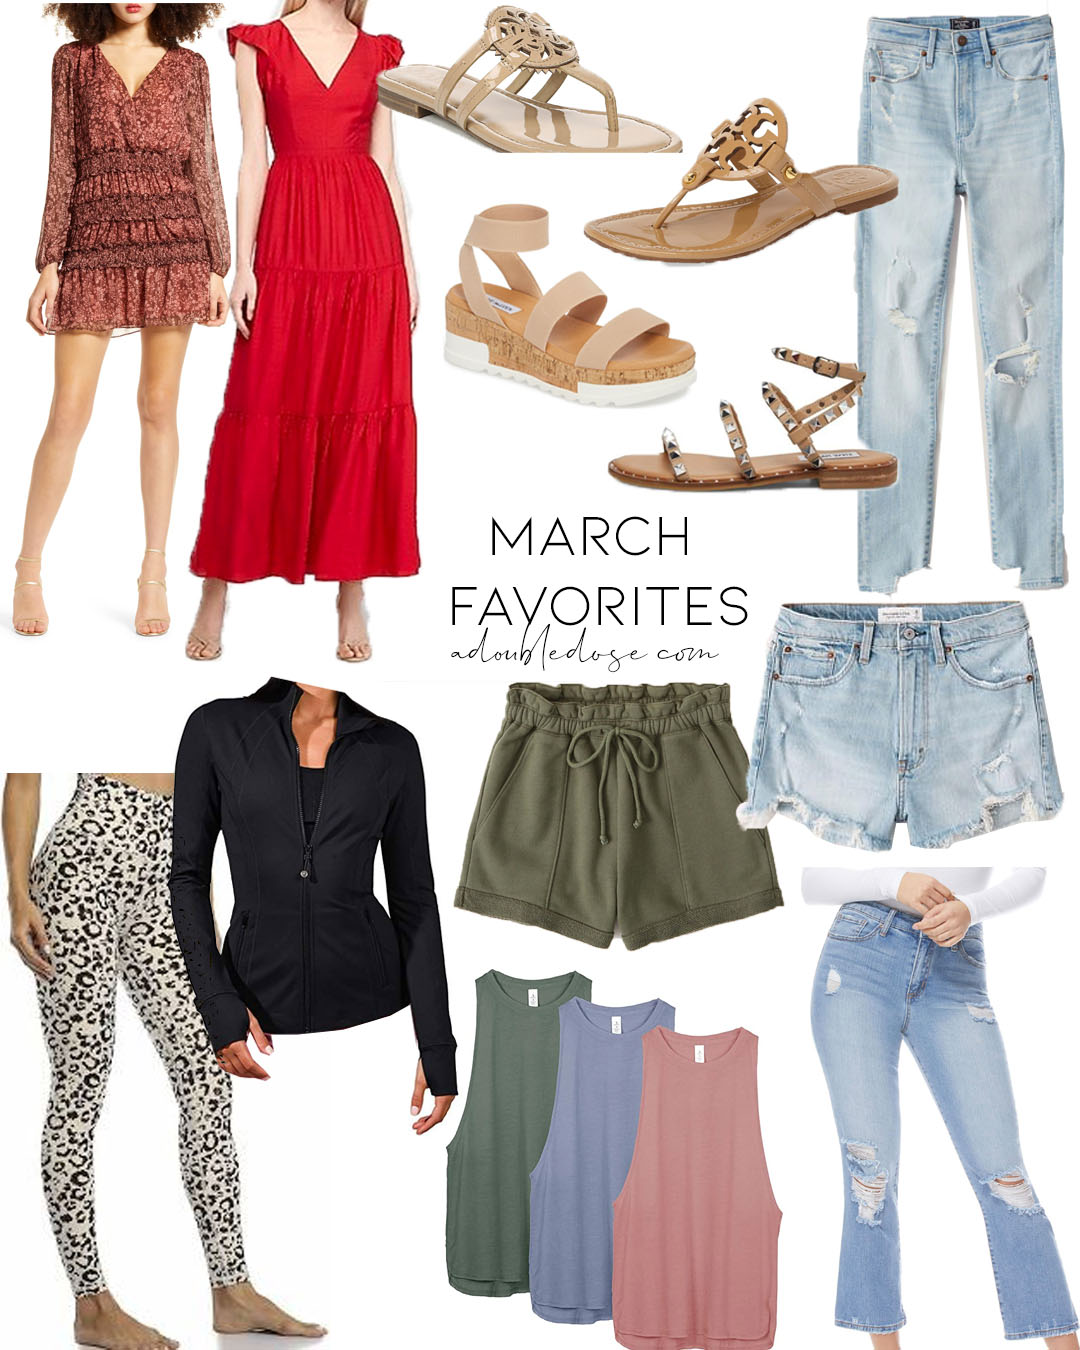 lifestyle and fashion blogger alexis belbel sharing her march favorites in shoes and clothing: dresses, maxi dresses, denim shorts from abercrombie, amazon activewear, studded sandals steve madden   adoubledose.com